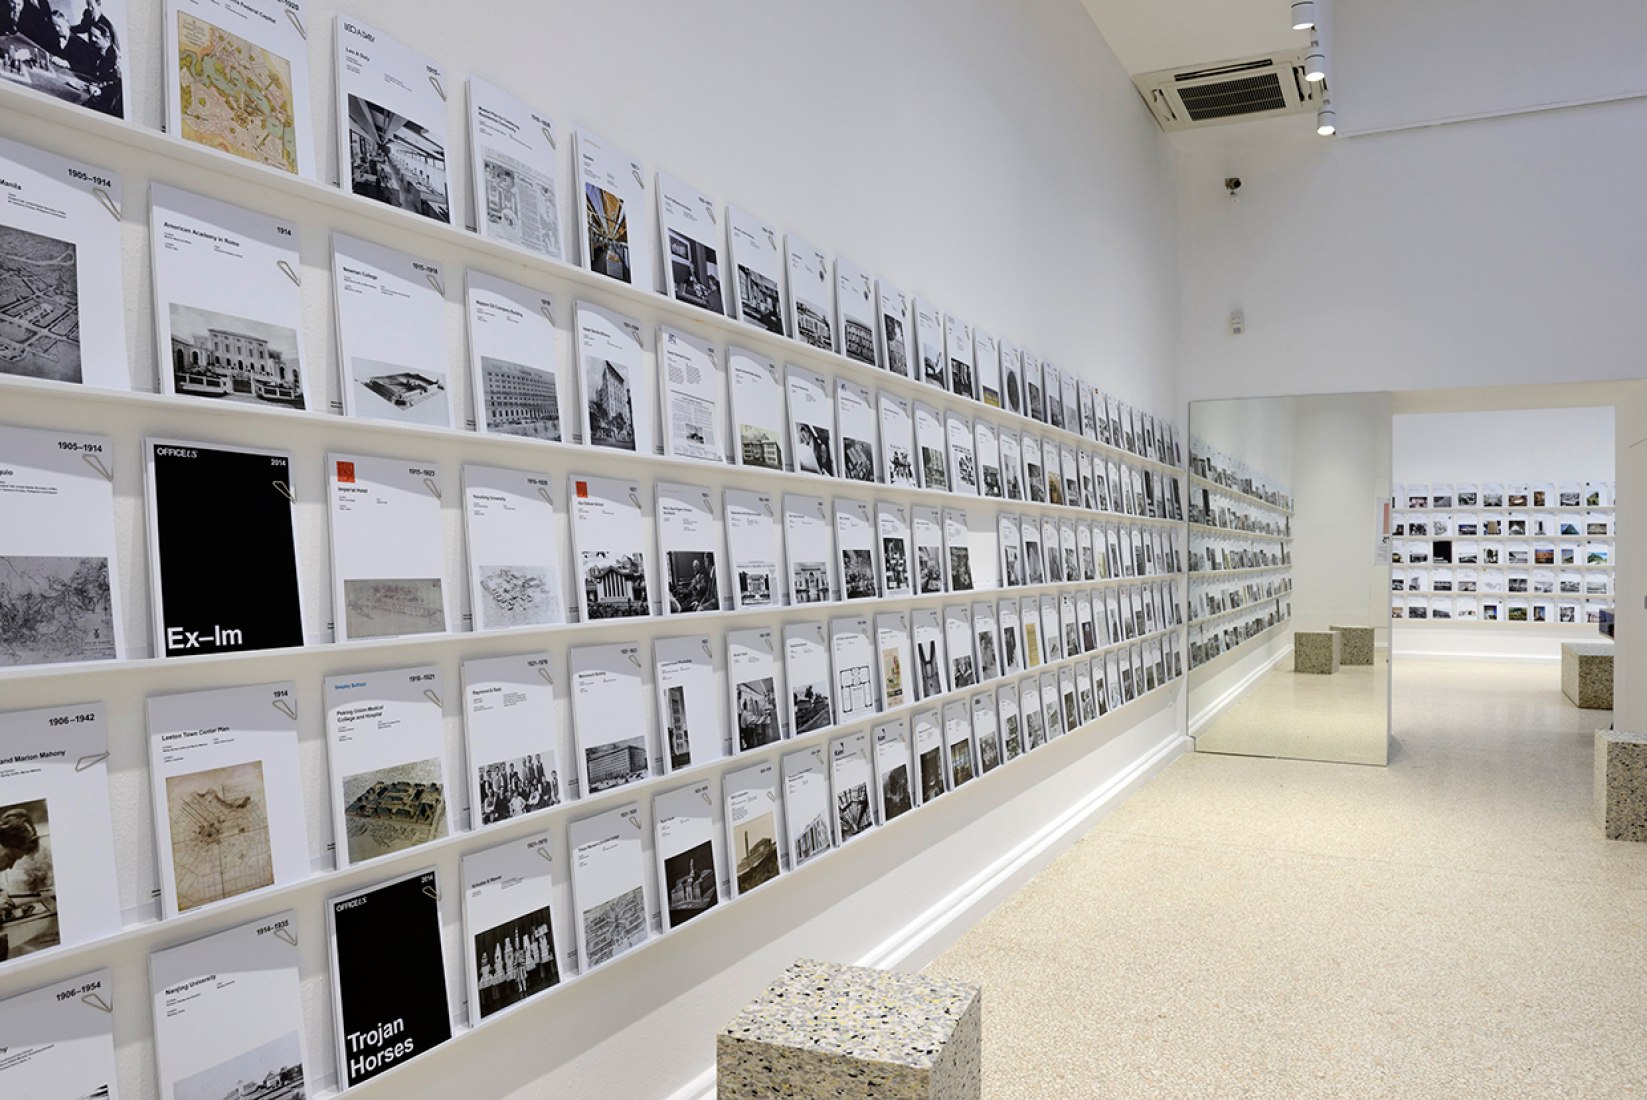 OFFICEUS. United States of America Pavilion at Venice Biennale 2014. Photography © Andrea Avezzù. Courtesy of la Biennale di Venezia.